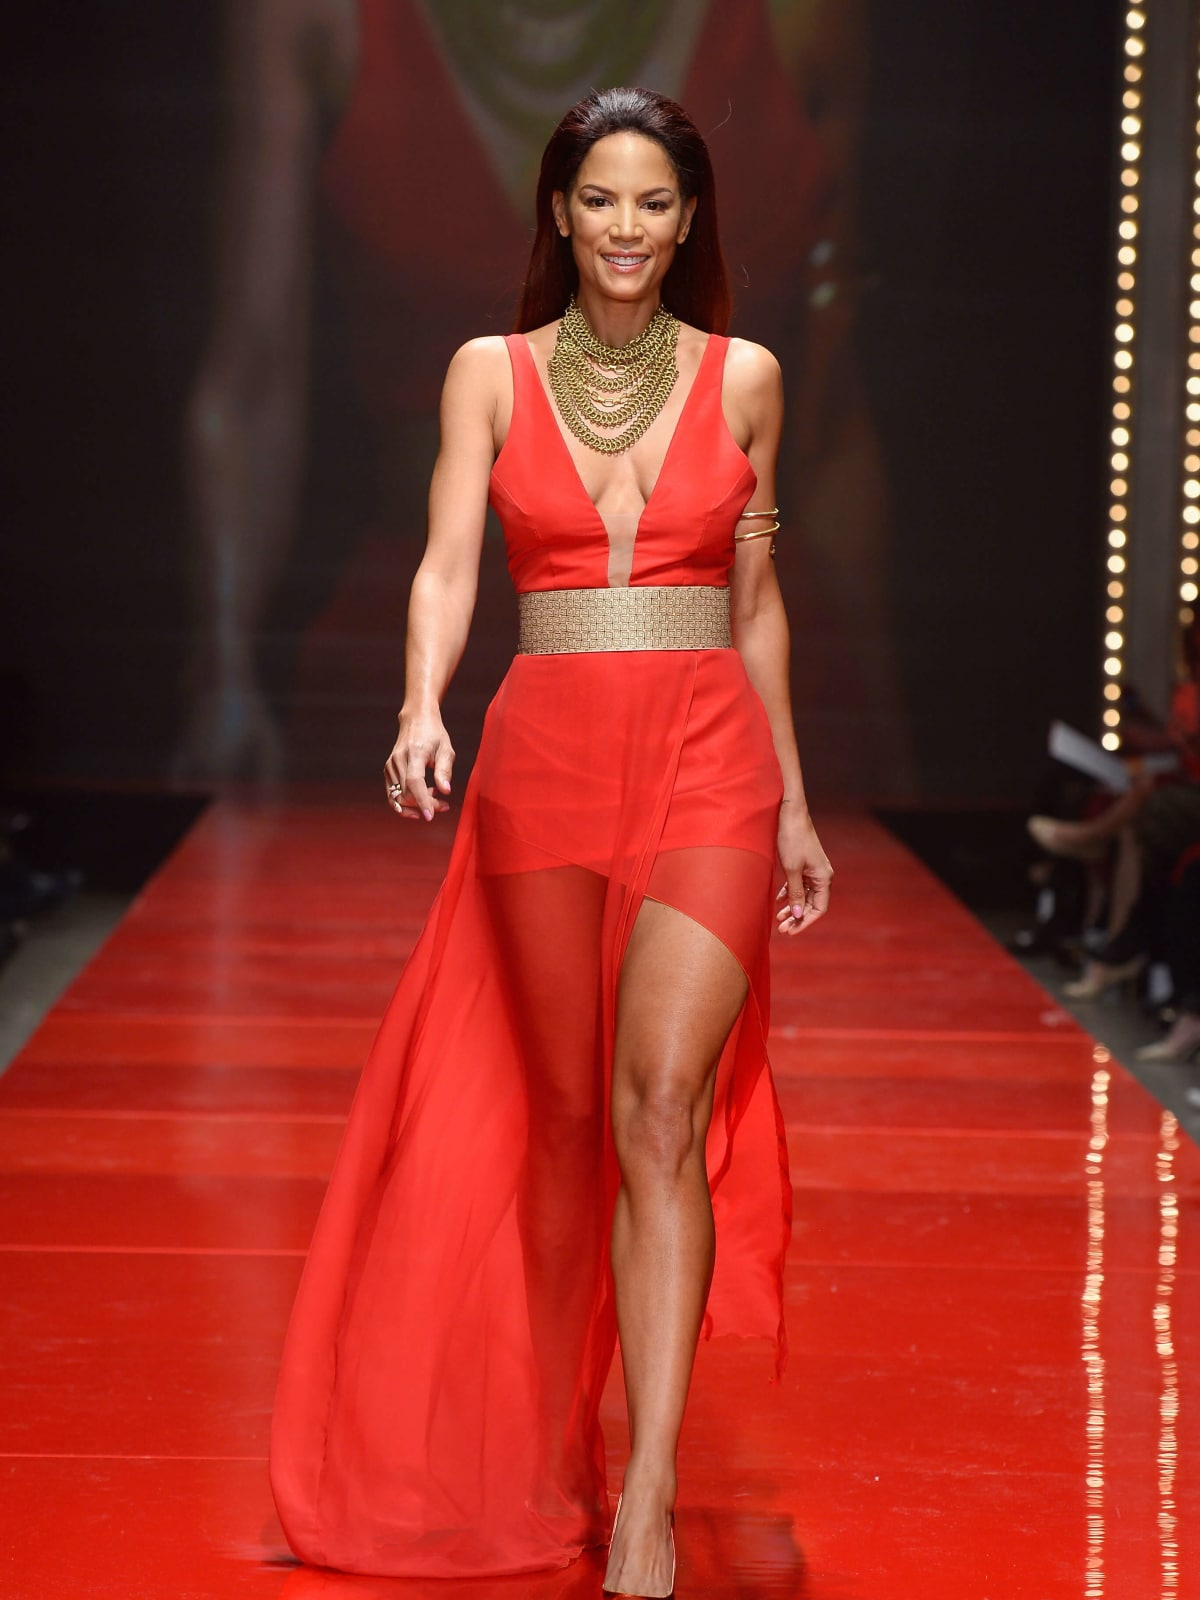 Model Veronica Webb walks the runway at the American Heart Association's Go Red For Women Red Dress Collection 2017